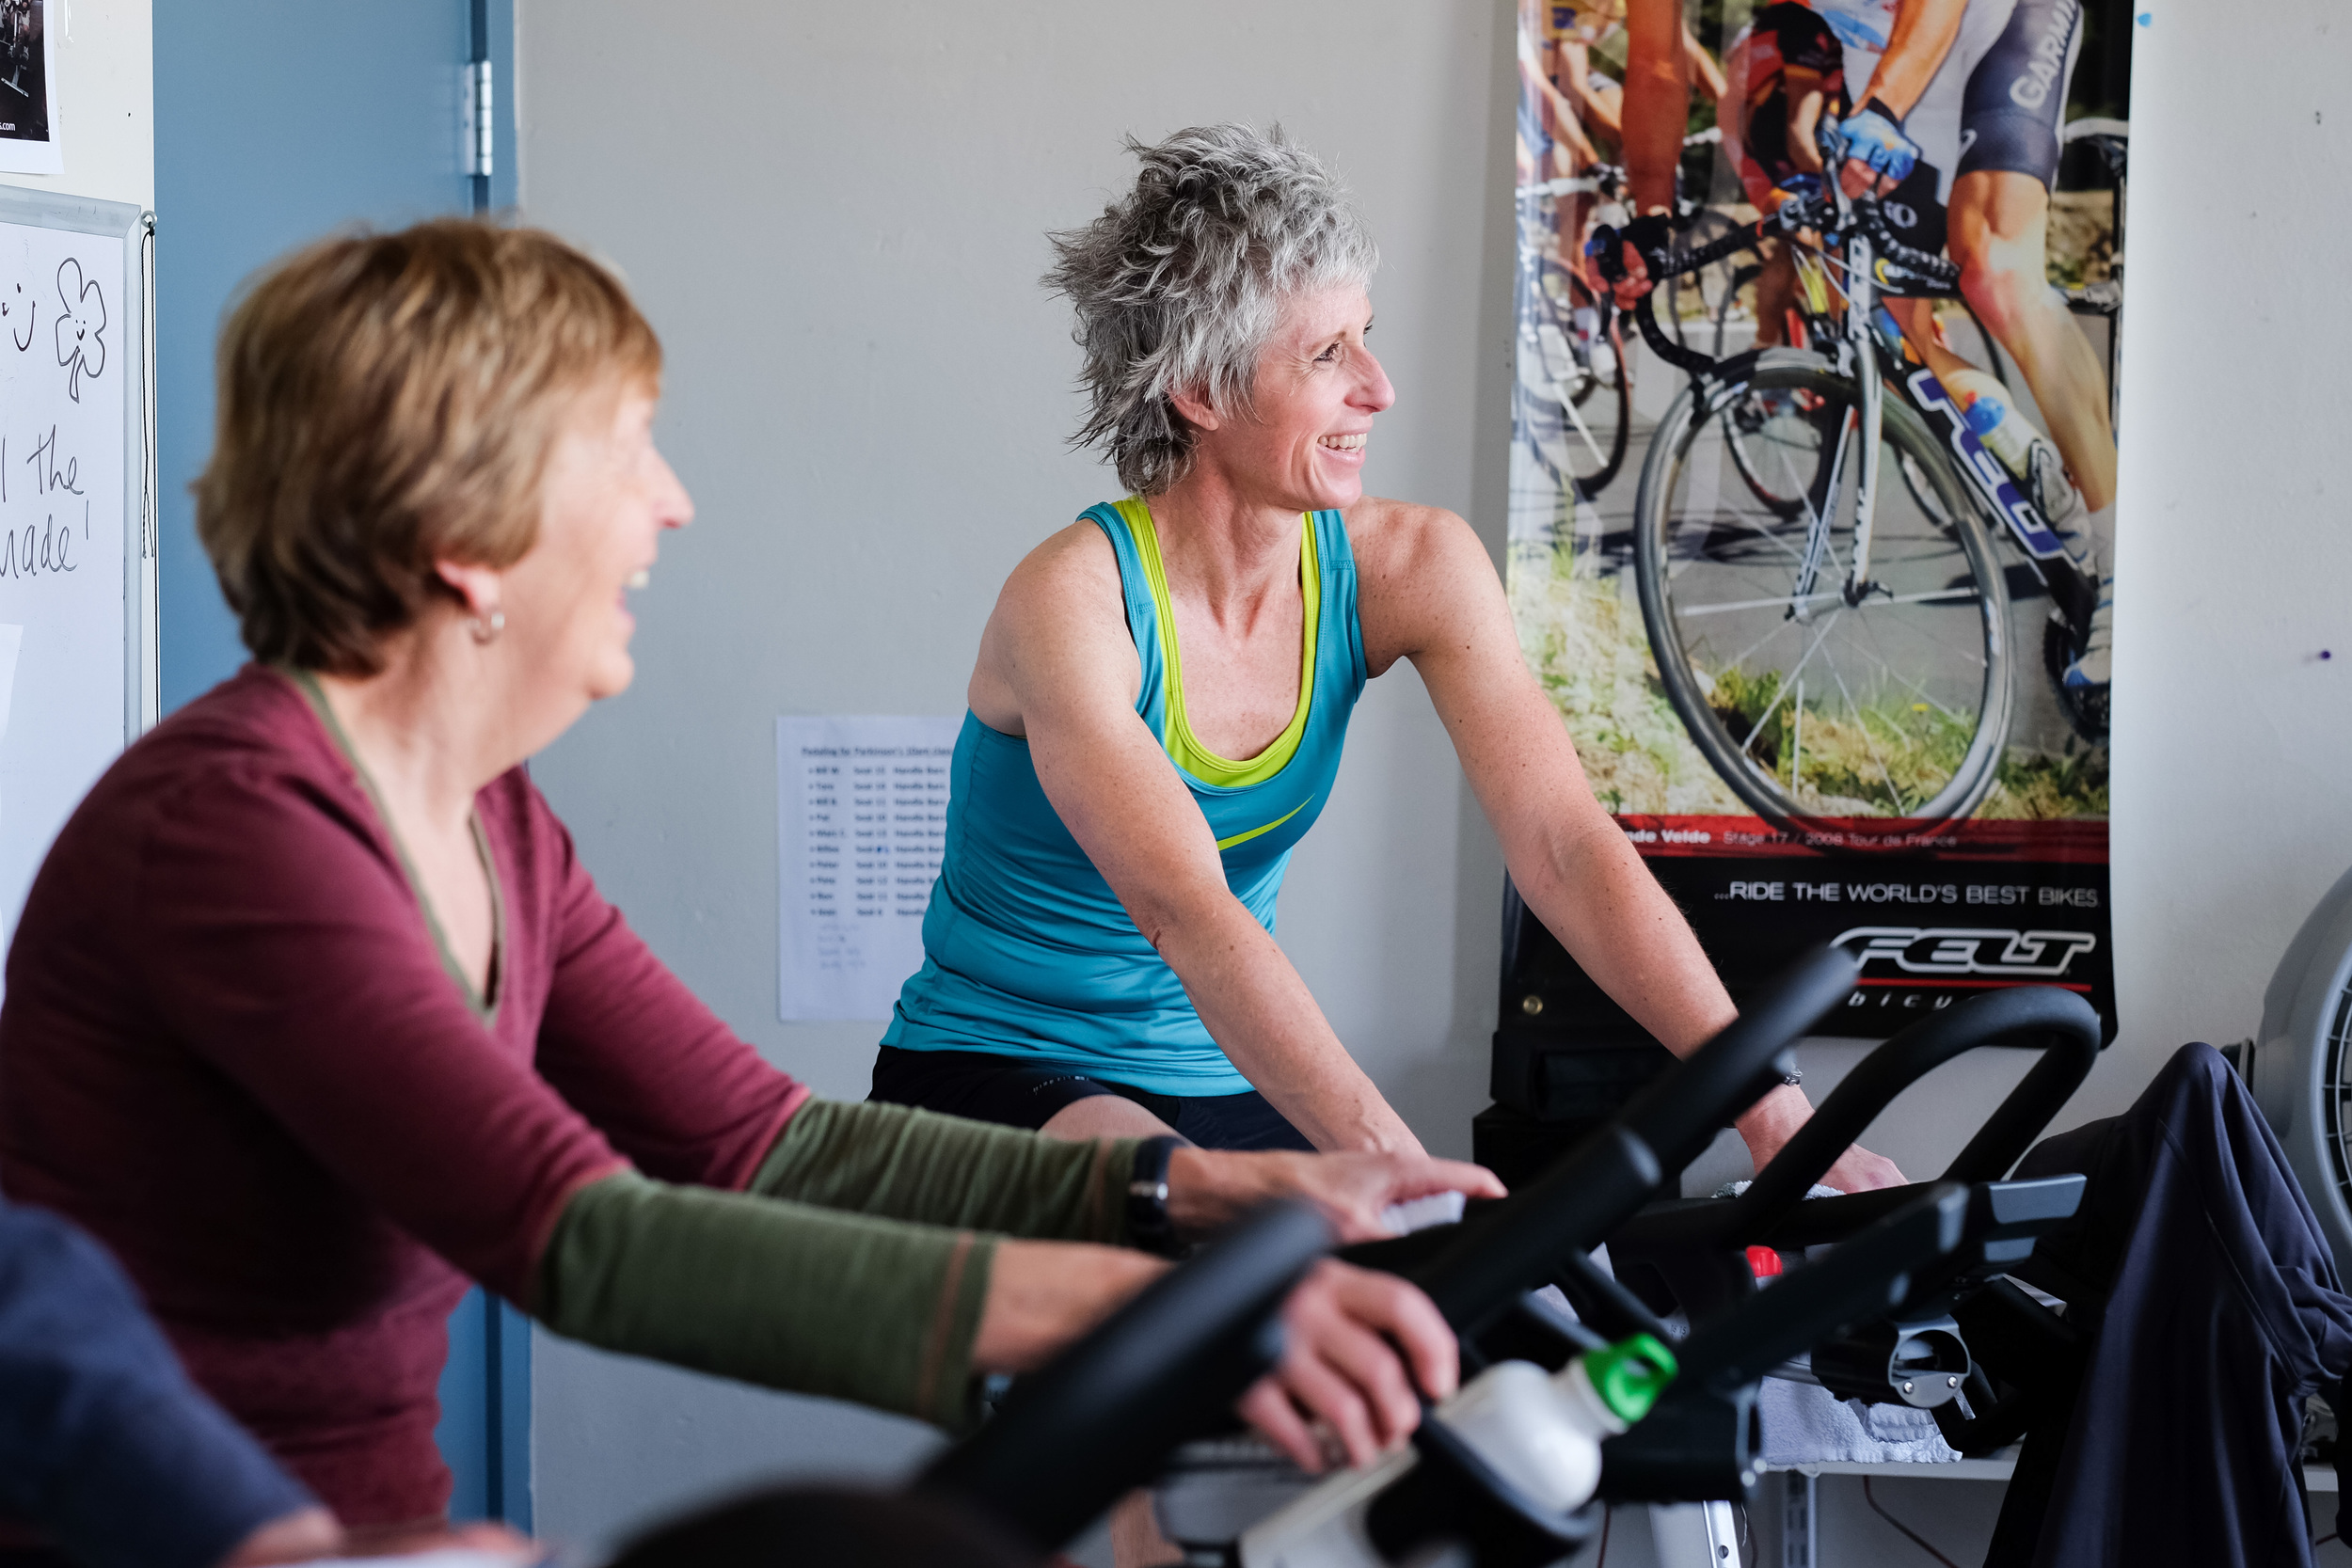 TRACY DHIEL, AN INSTRUCTOR AND LEADER OF THE PEDALING FOR PARKINSON'S CLASS AT THE YMCA, CHATS WITH PARTICIPANTS DURING THE HOUR BIKE RIDE. STUDIES HAVE SHOWN THAT SPIN CLASSES LIKE THIS ONE CAN HELP REDUCE SYMPTOMS FOR PARKINSON'S BY AROUND 35 PERCENT, ACCORDING TO THE YMCA. For Klipsun Magazine